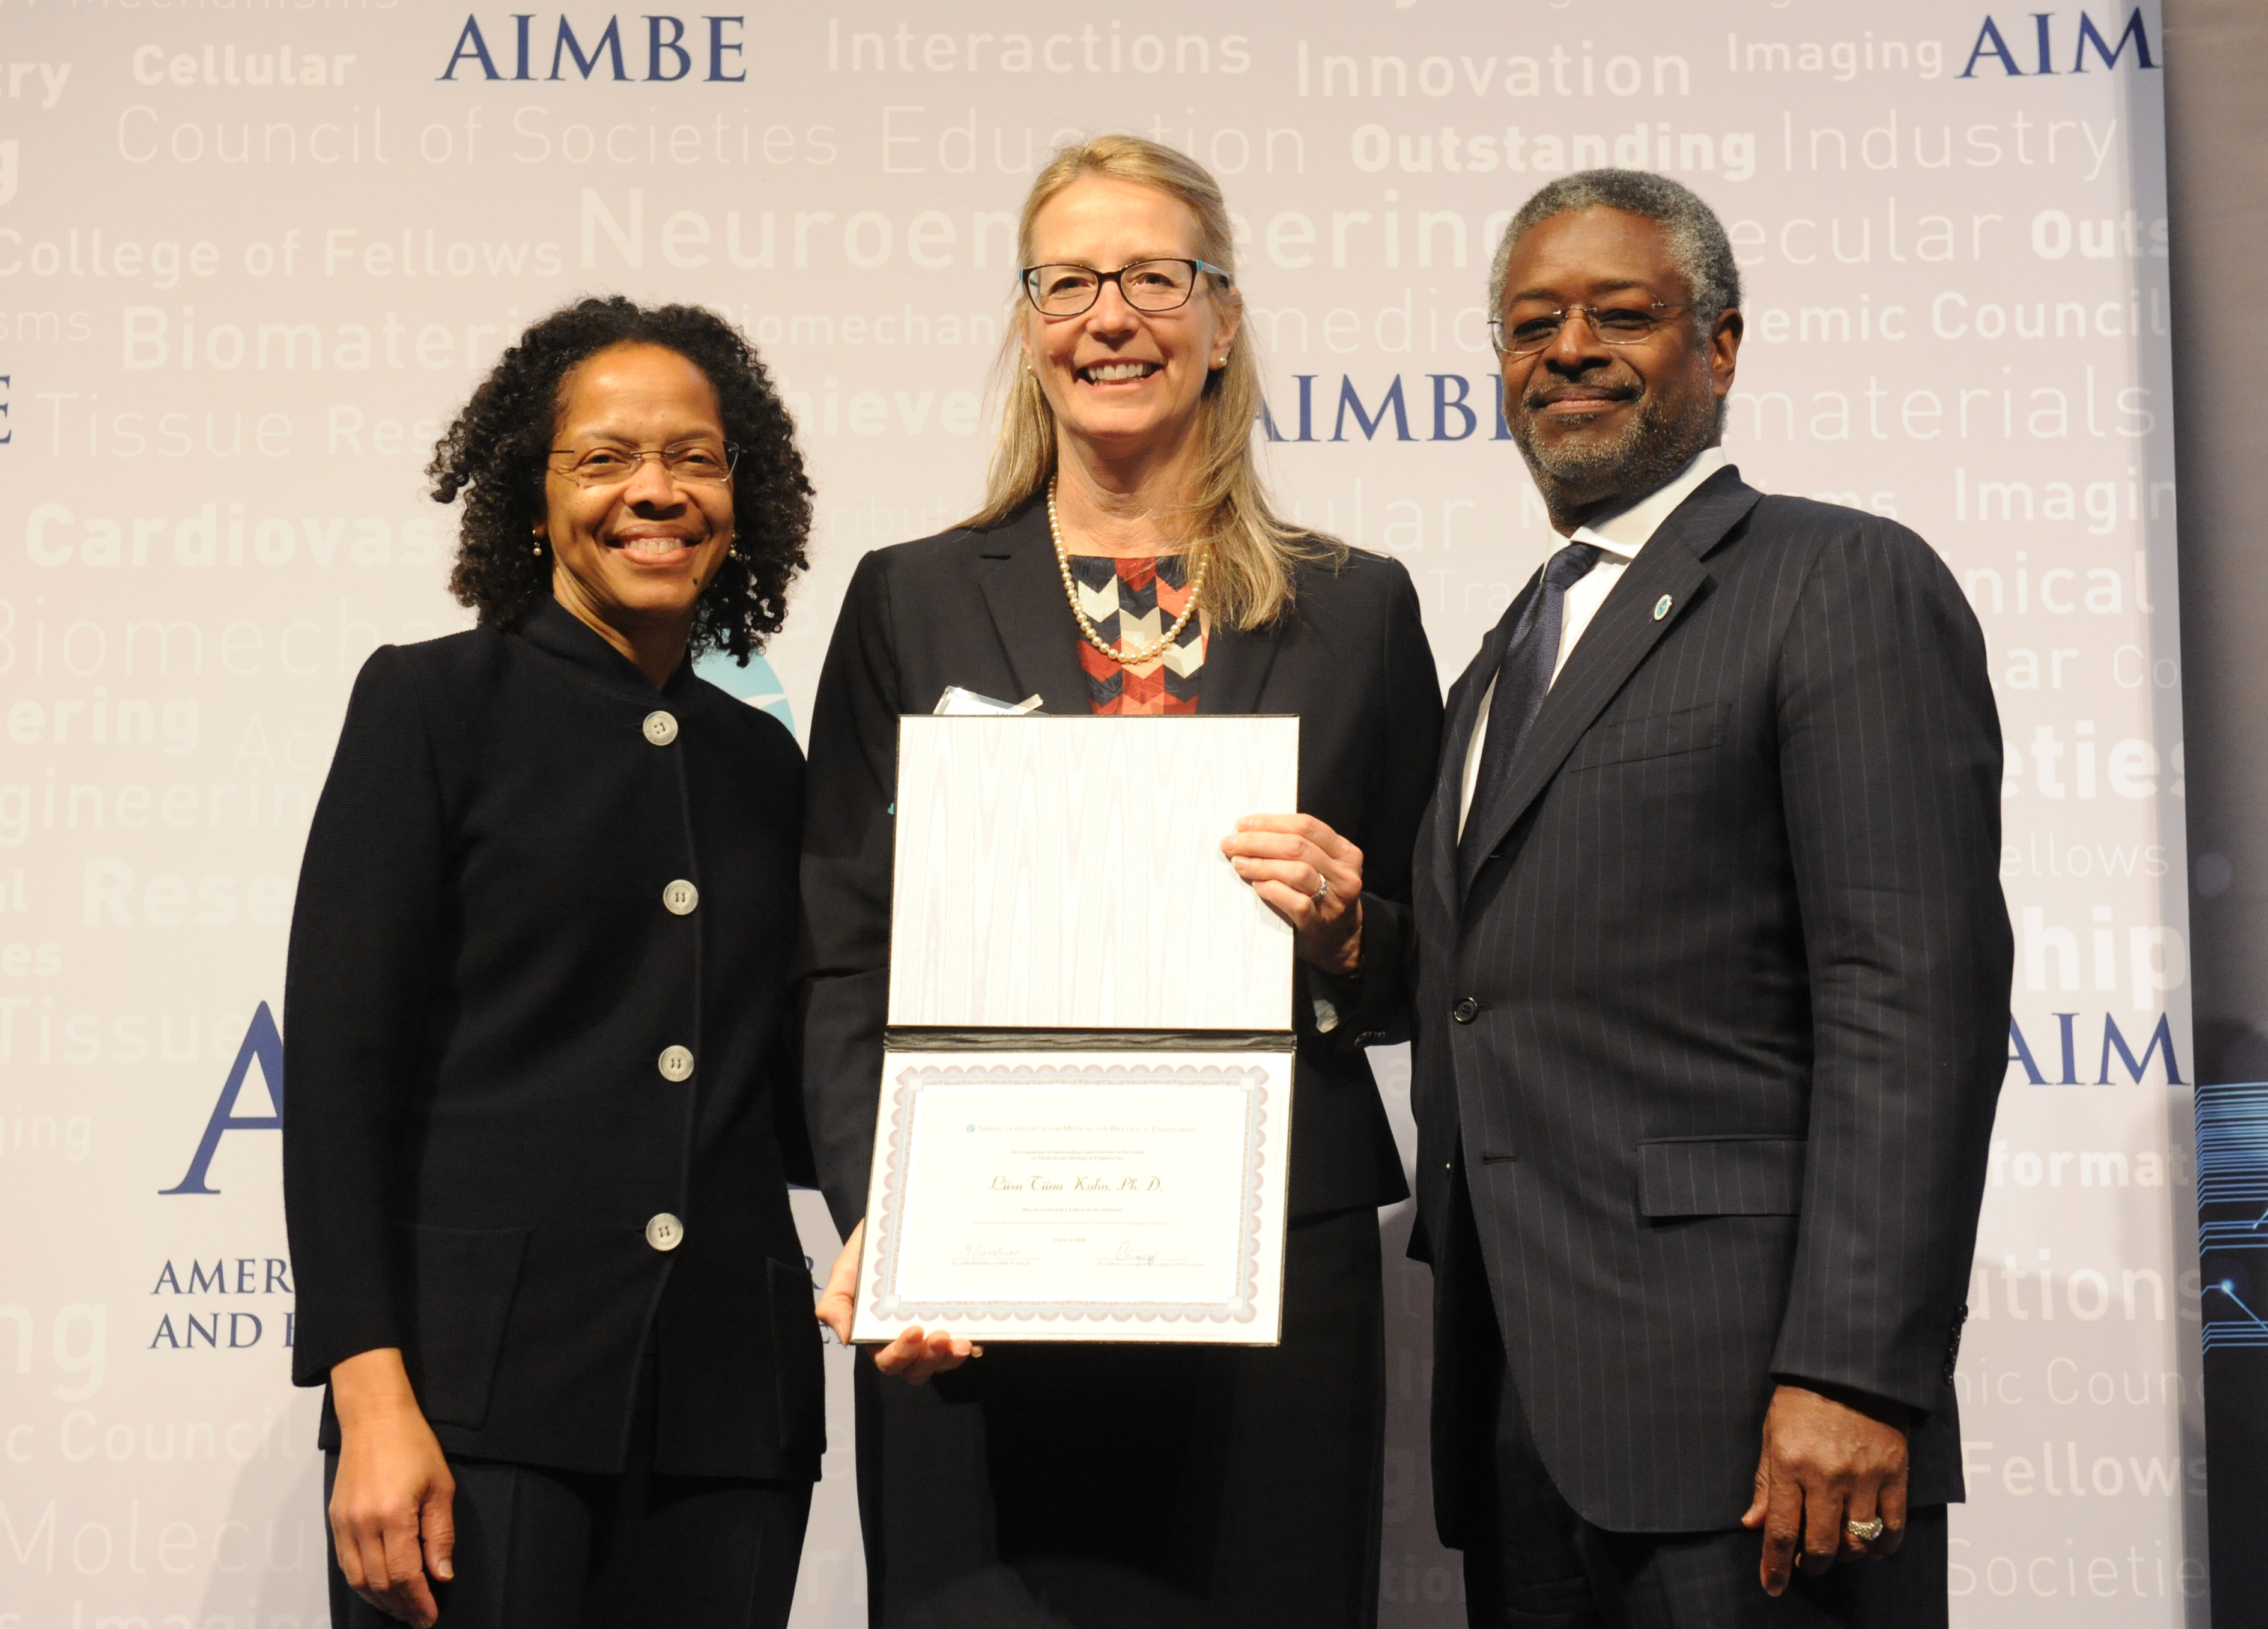 Liisa Kuhn, center, is inducted into the AIMBE Fellows National Academy of Sciences. She is joined by AIMBE President Gilda Barabino (left) and AIMBE Chair Anthony Guiseppi-Elie (right). (AIMBE Fellows Photo)